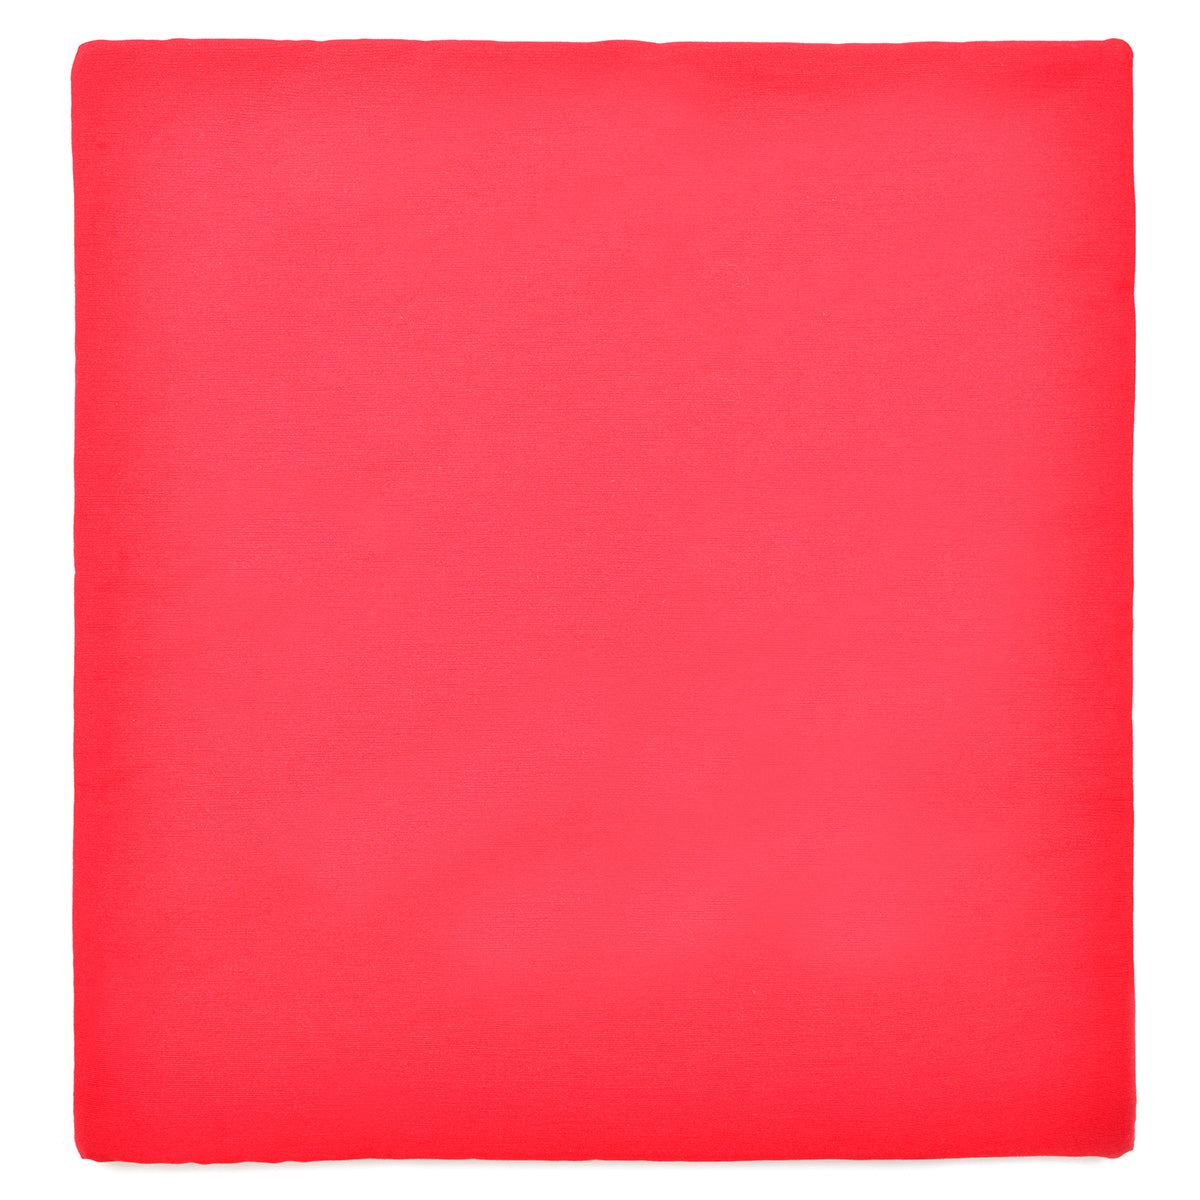 RED STAR 1 Perna Decorativa 45x45